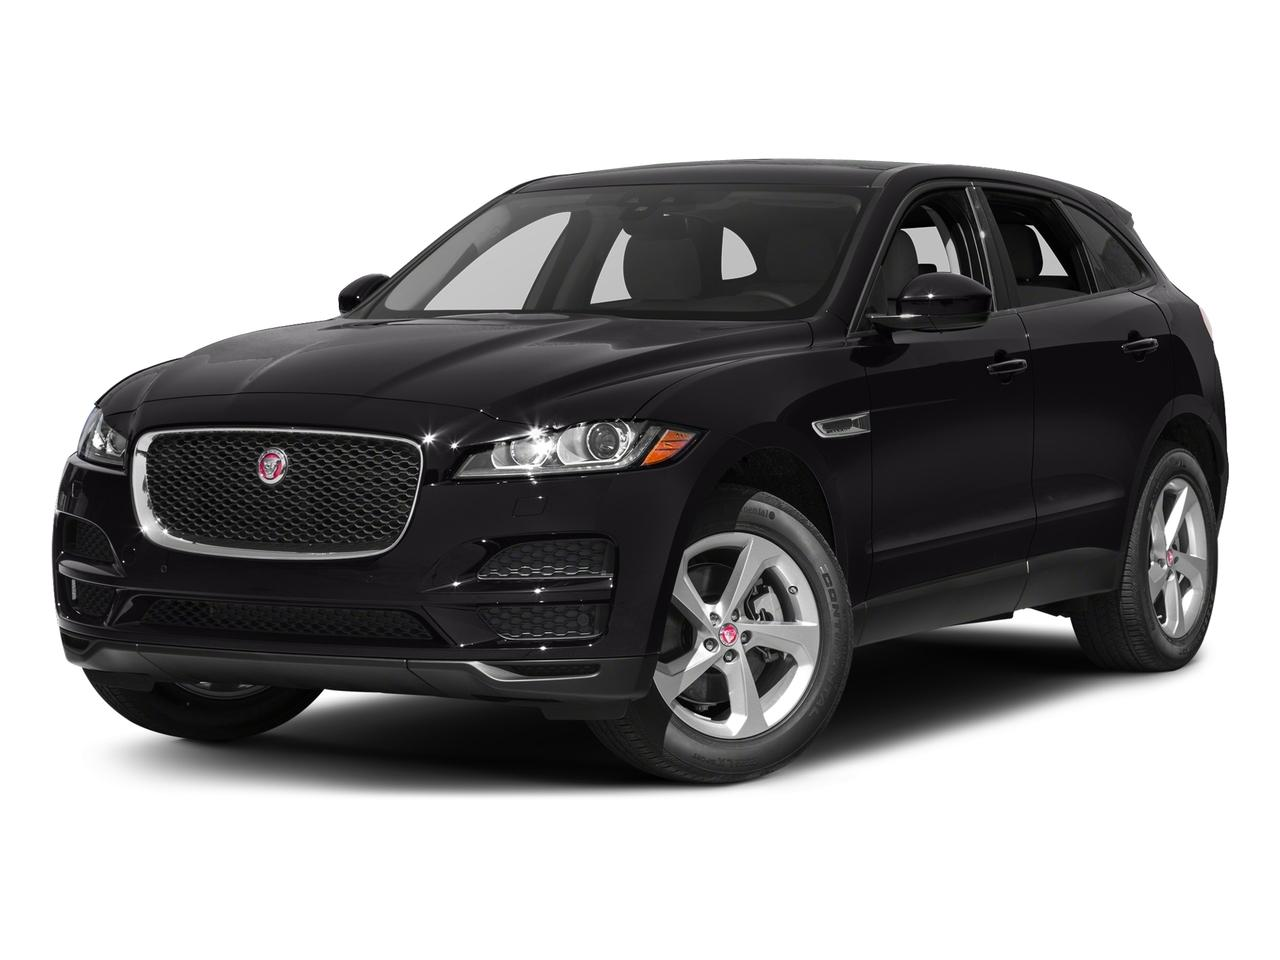 2017 Jaguar F-PACE Vehicle Photo in Stafford, TX 77477